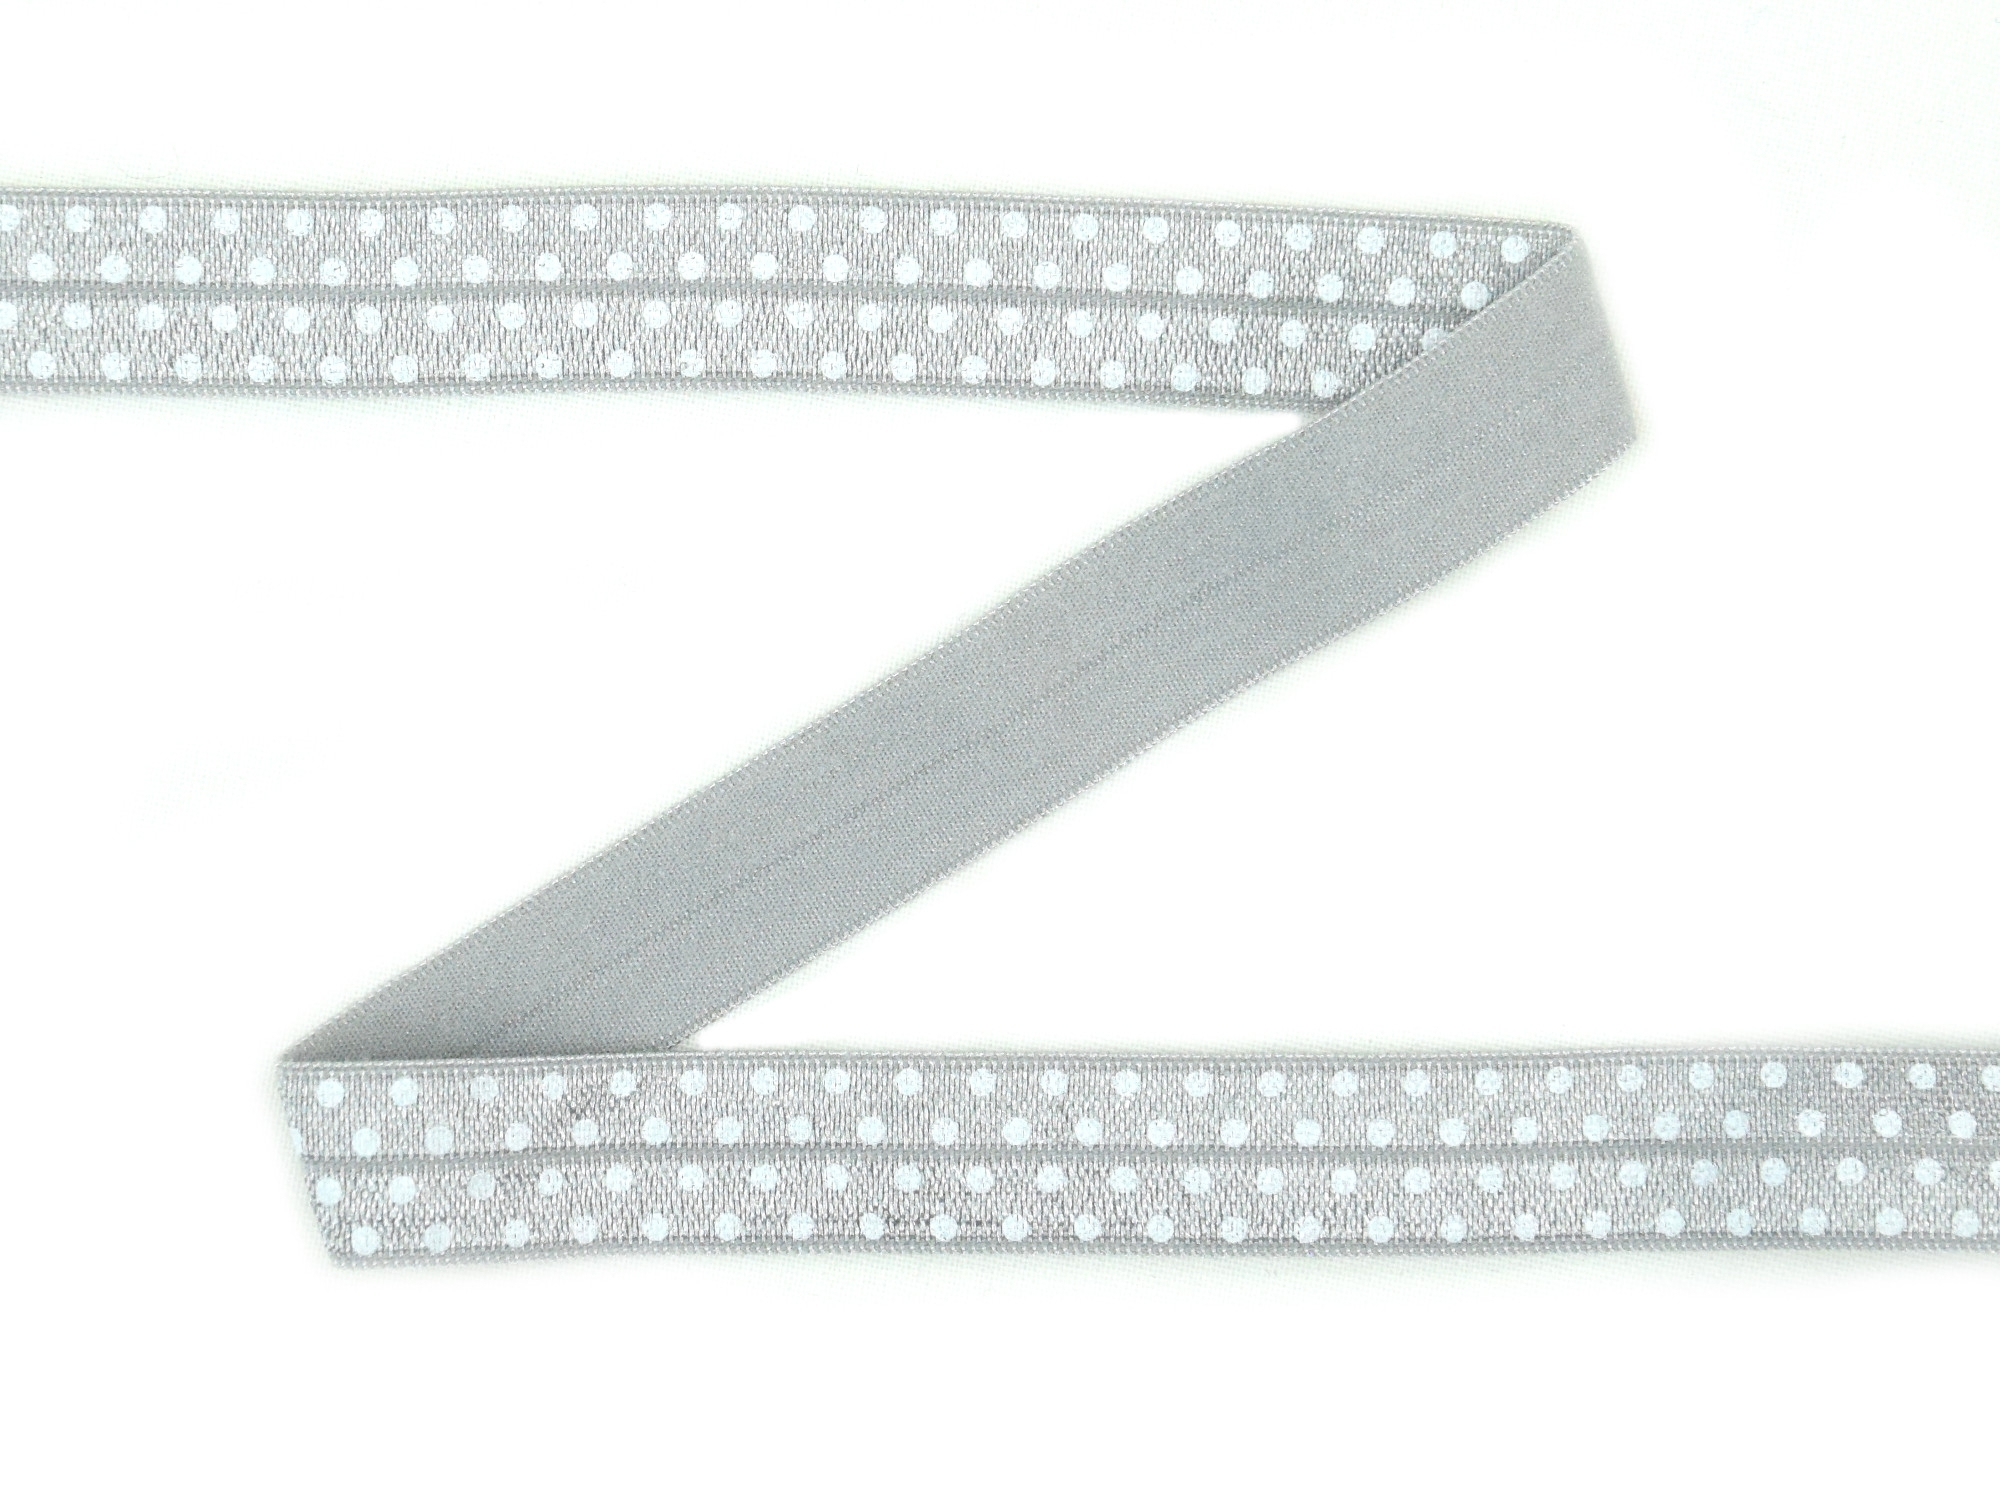 Elastic Binding Ribbon with dots, grey 15 mm